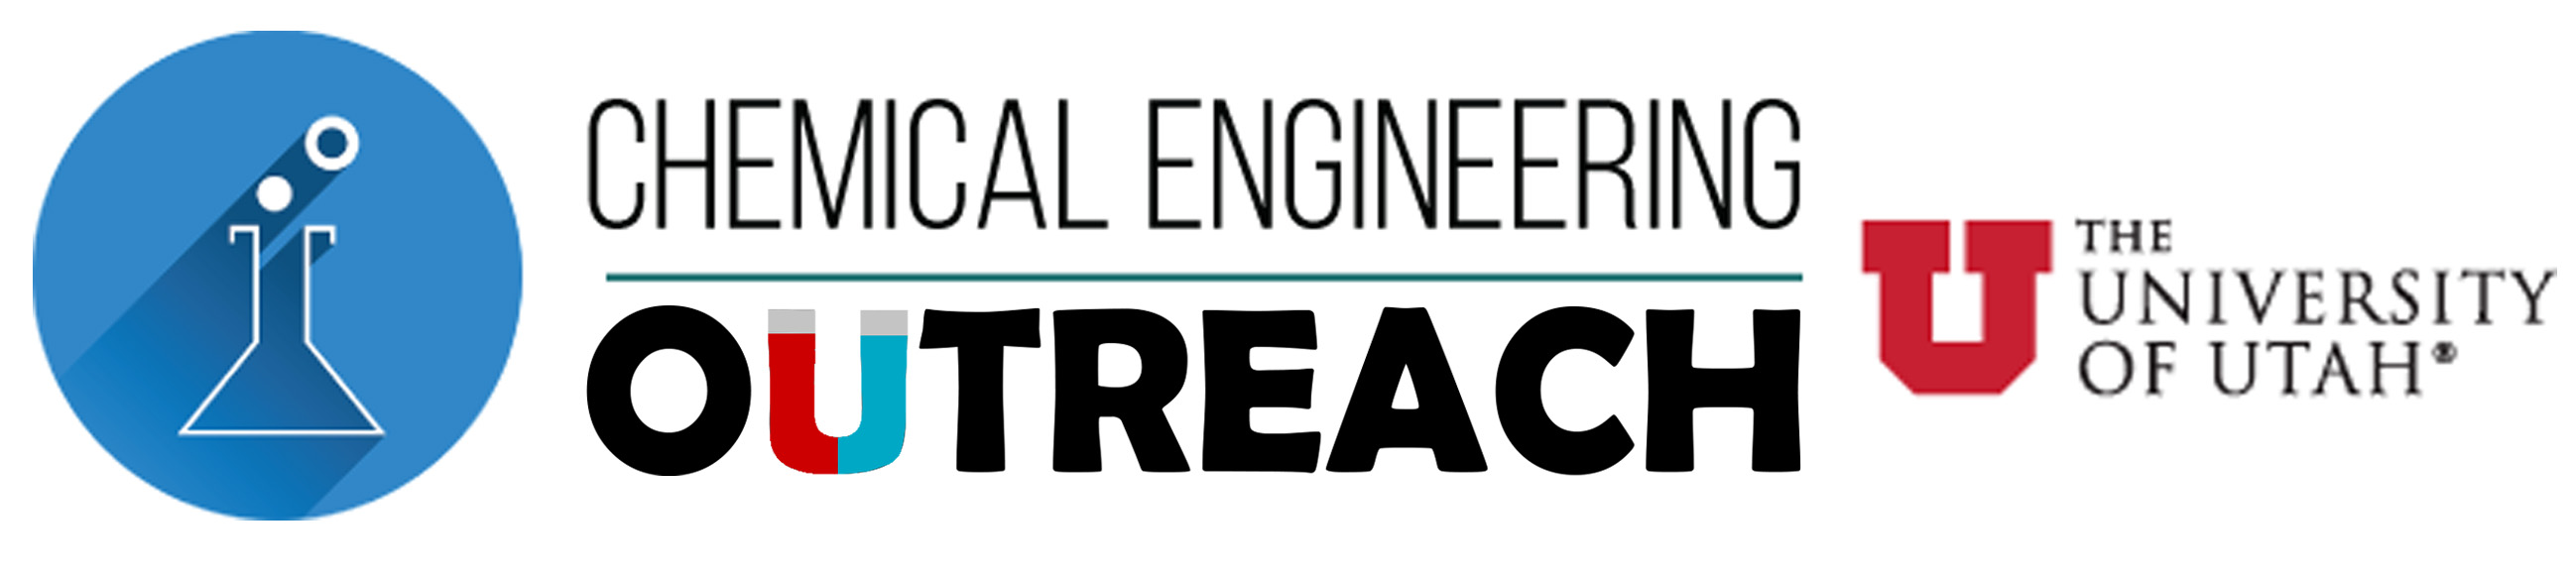 Chemical Engineering Outreach Logo